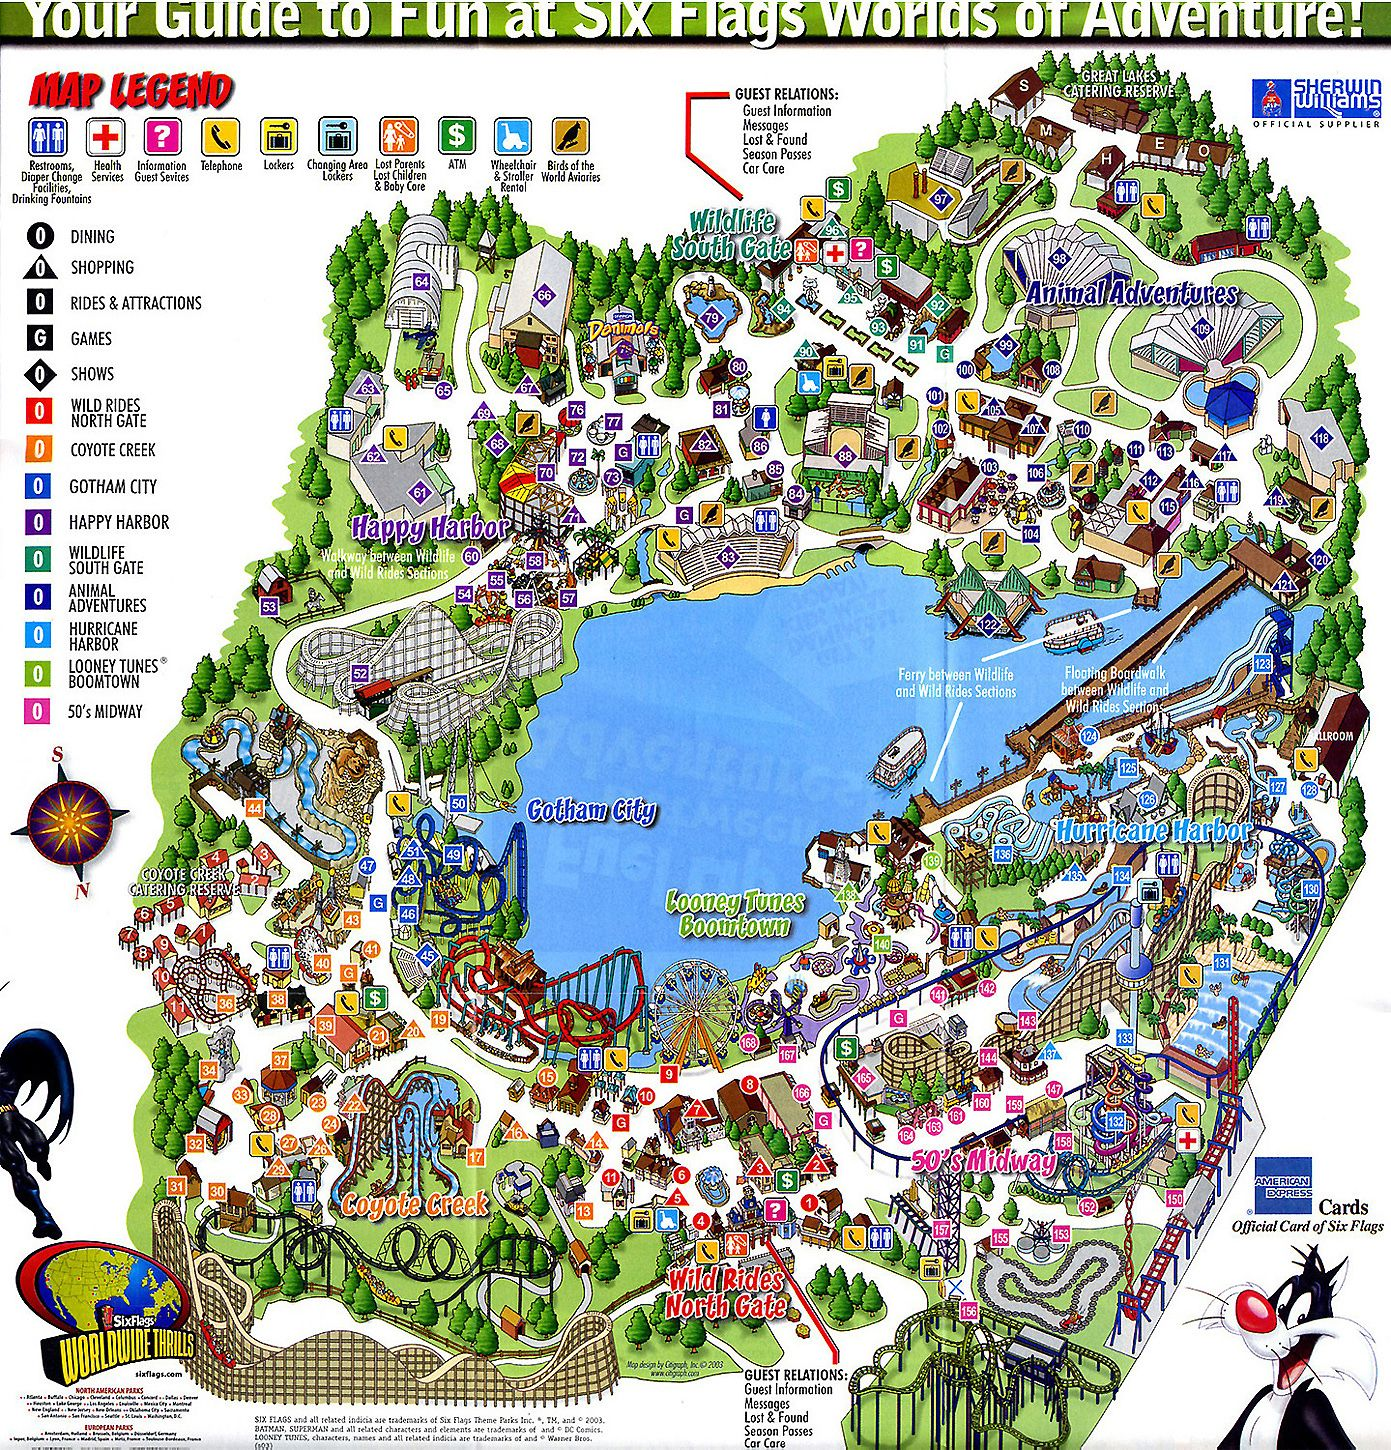 Geauga lake longer open but loved itfavorite coaster was abandoned gumiabroncs Choice Image